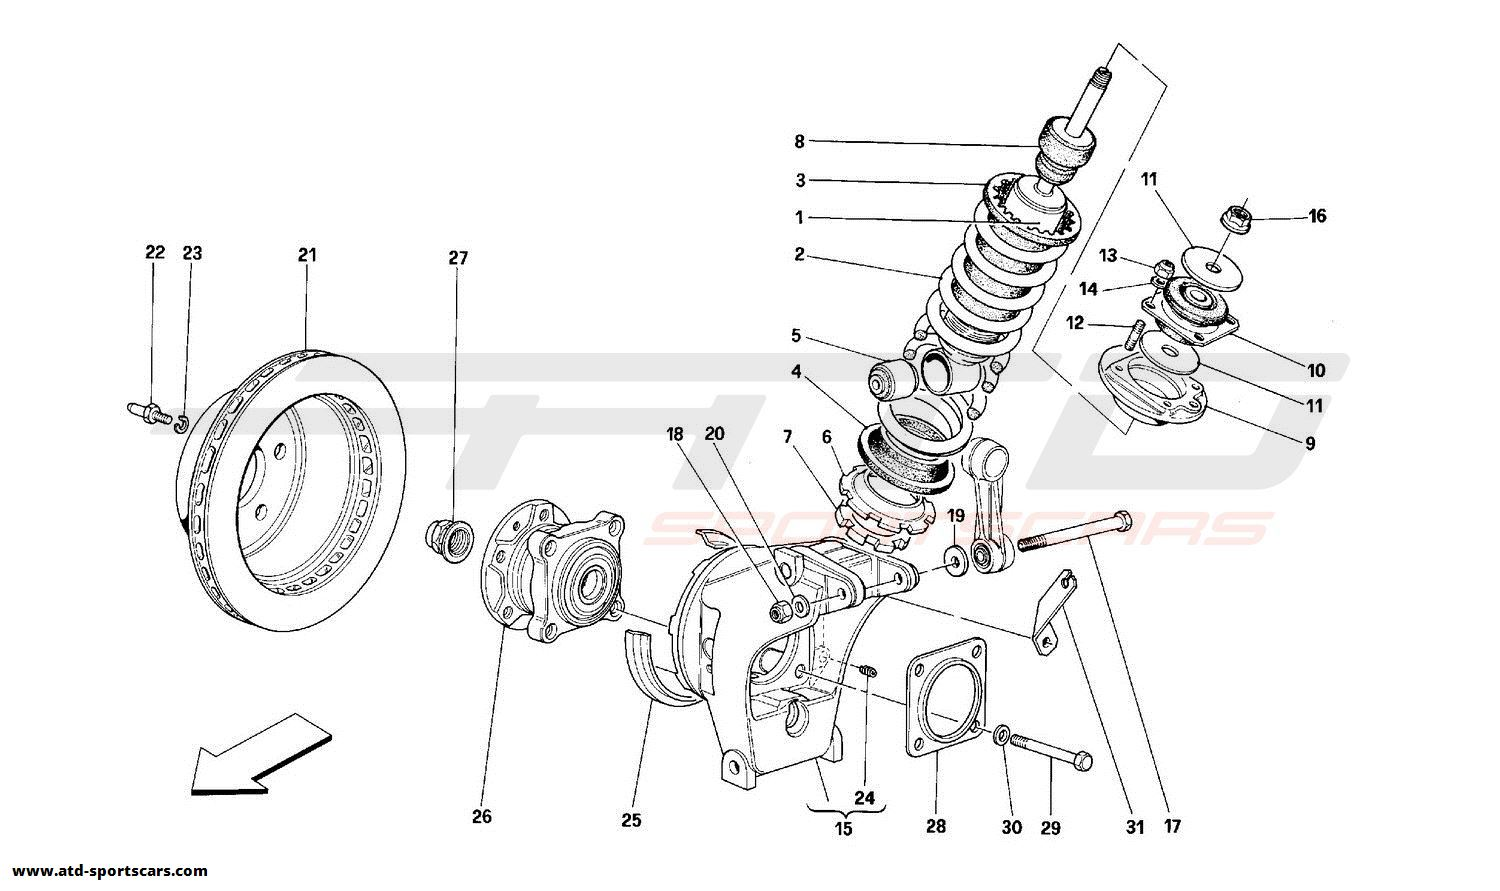 Ferrari 348 REAR SUSPENSION - SHOCK ABSORBER AND BRAKE DISC